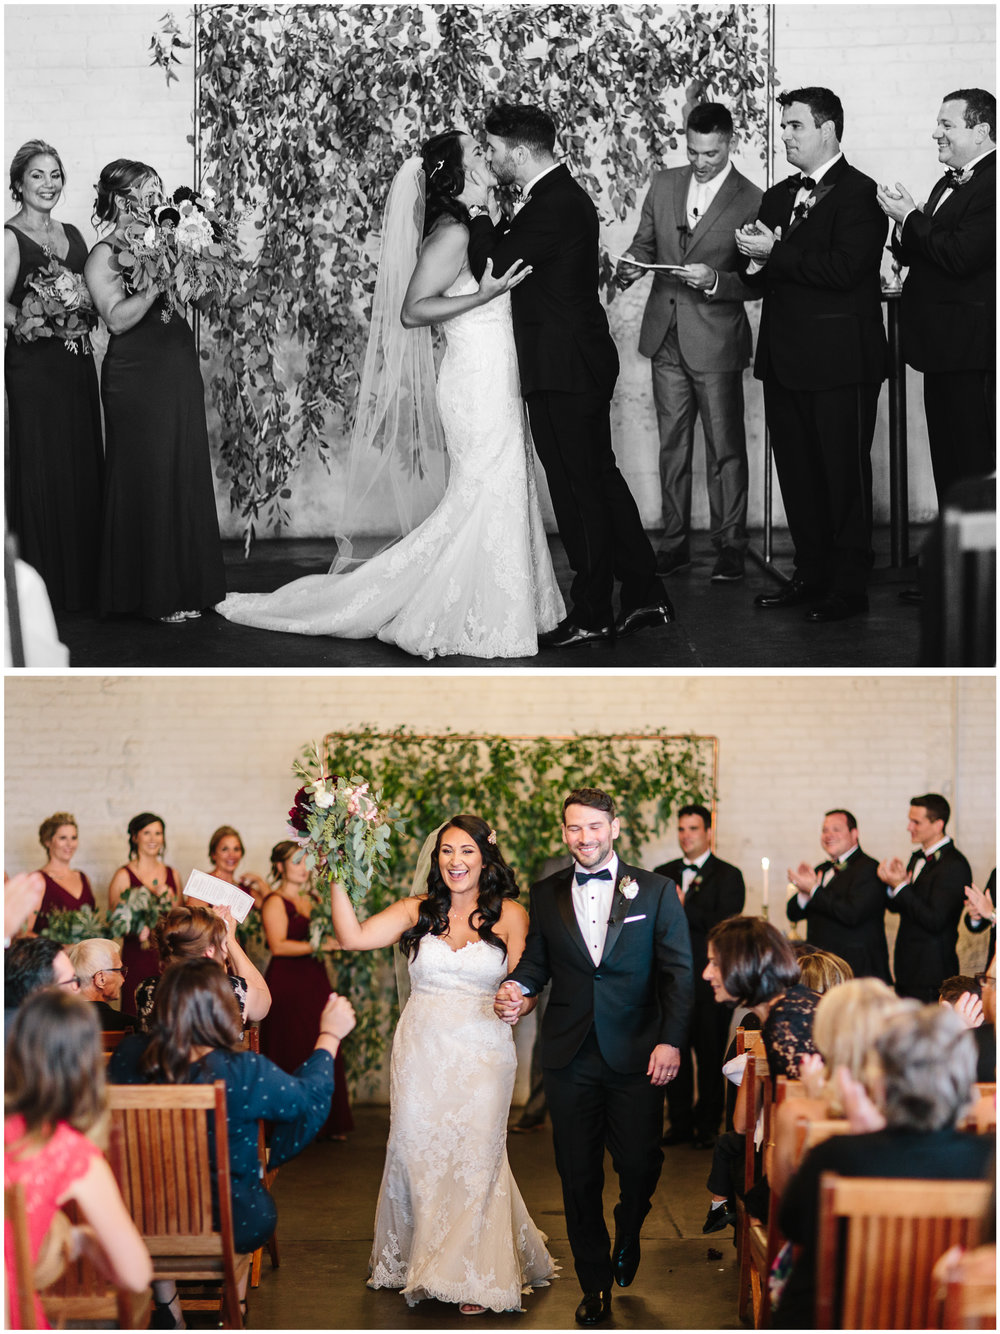 moss_denver_wedding_52.jpg